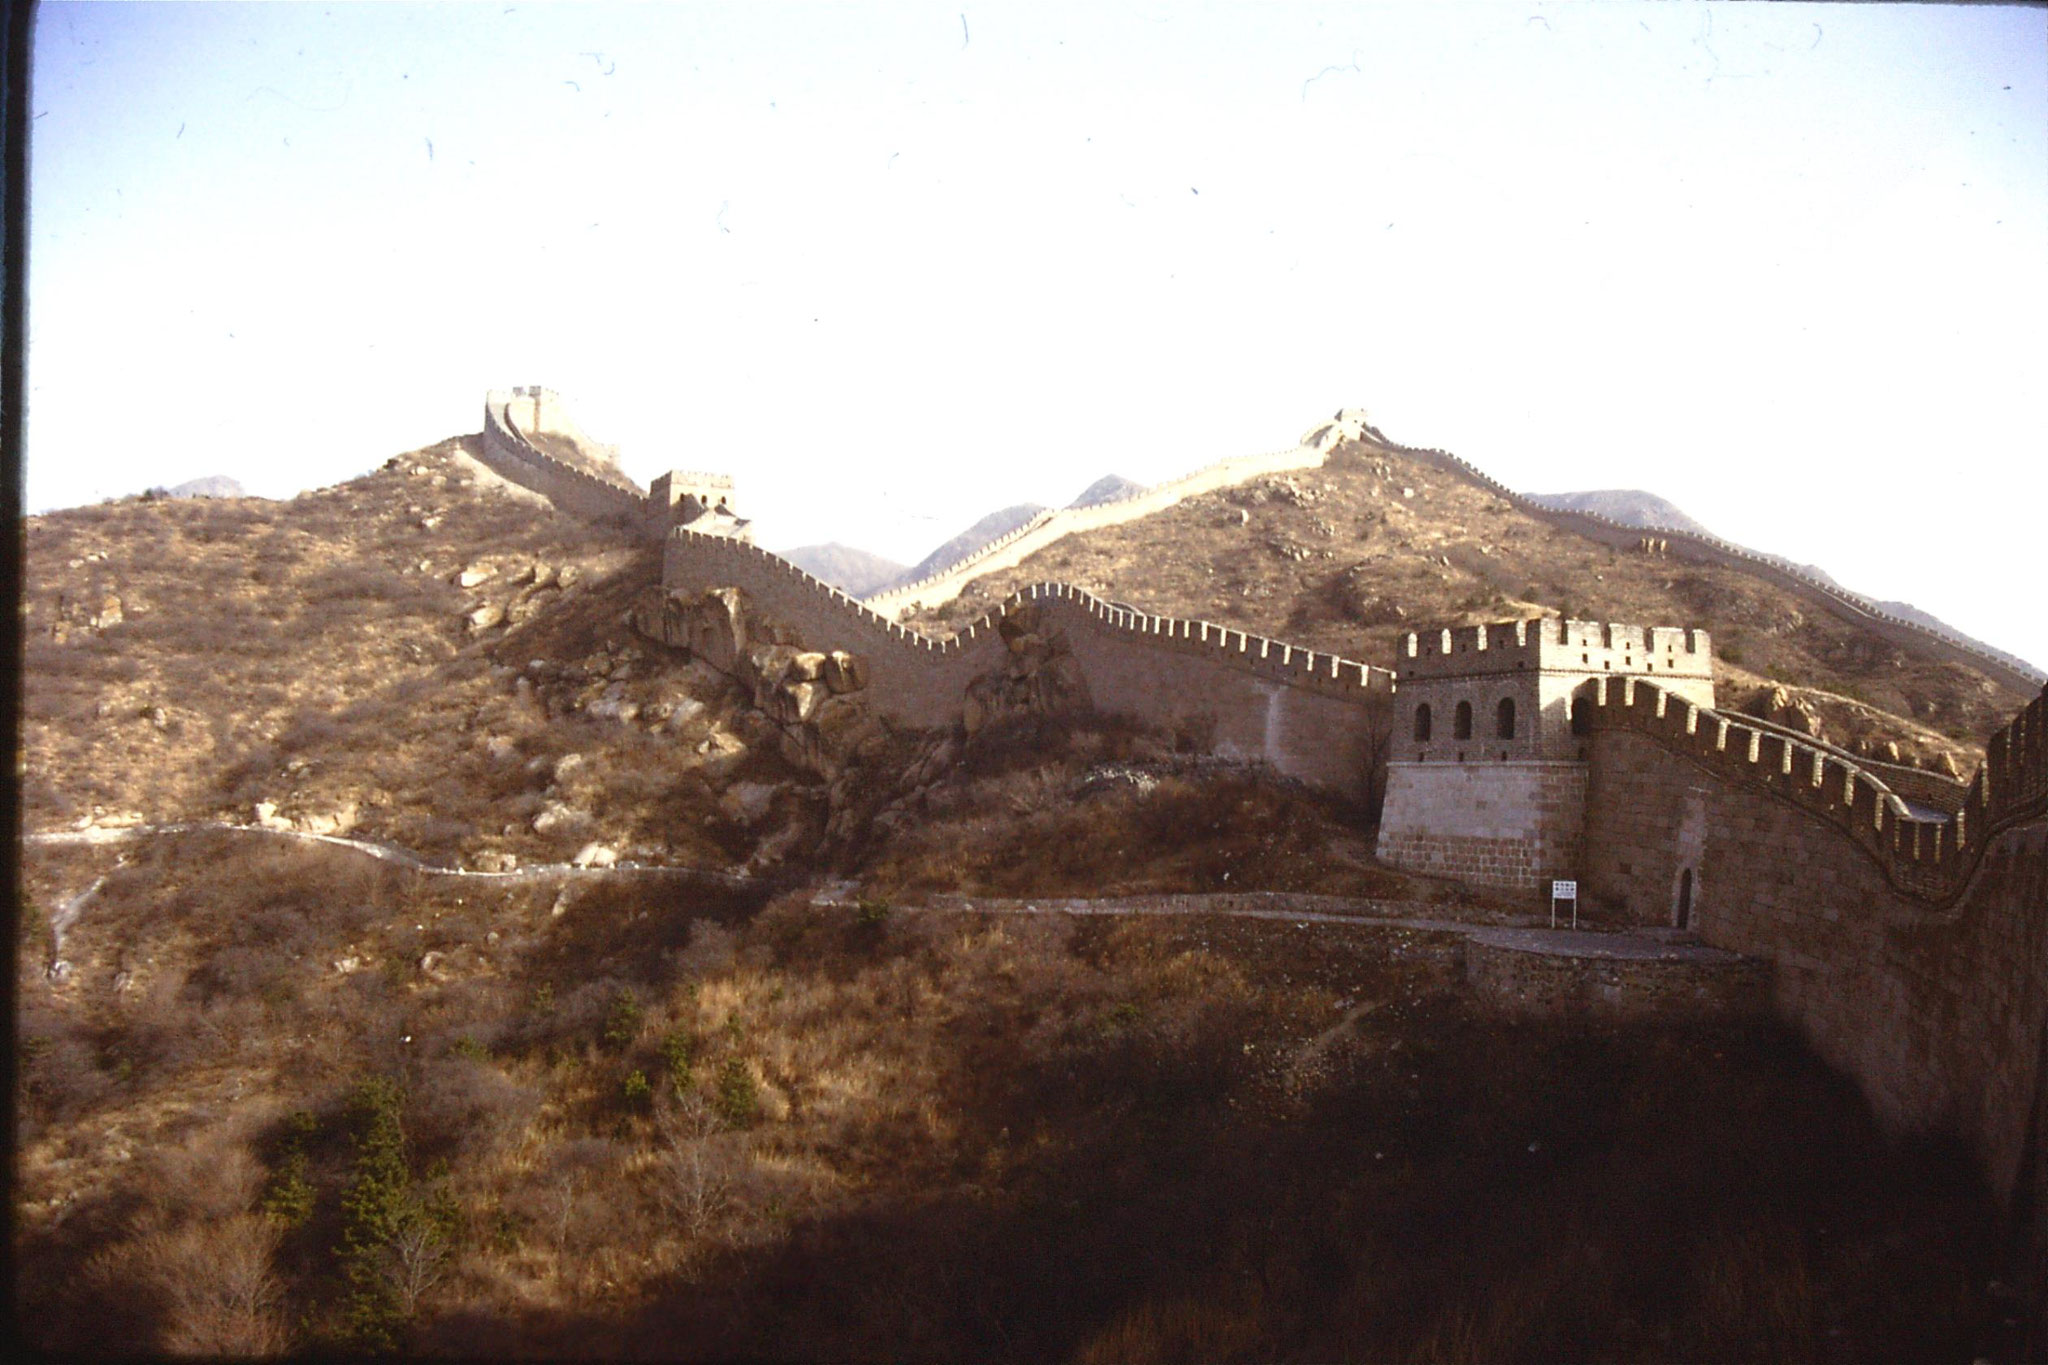 12/11/1988: 2: Great Wall at Badaling